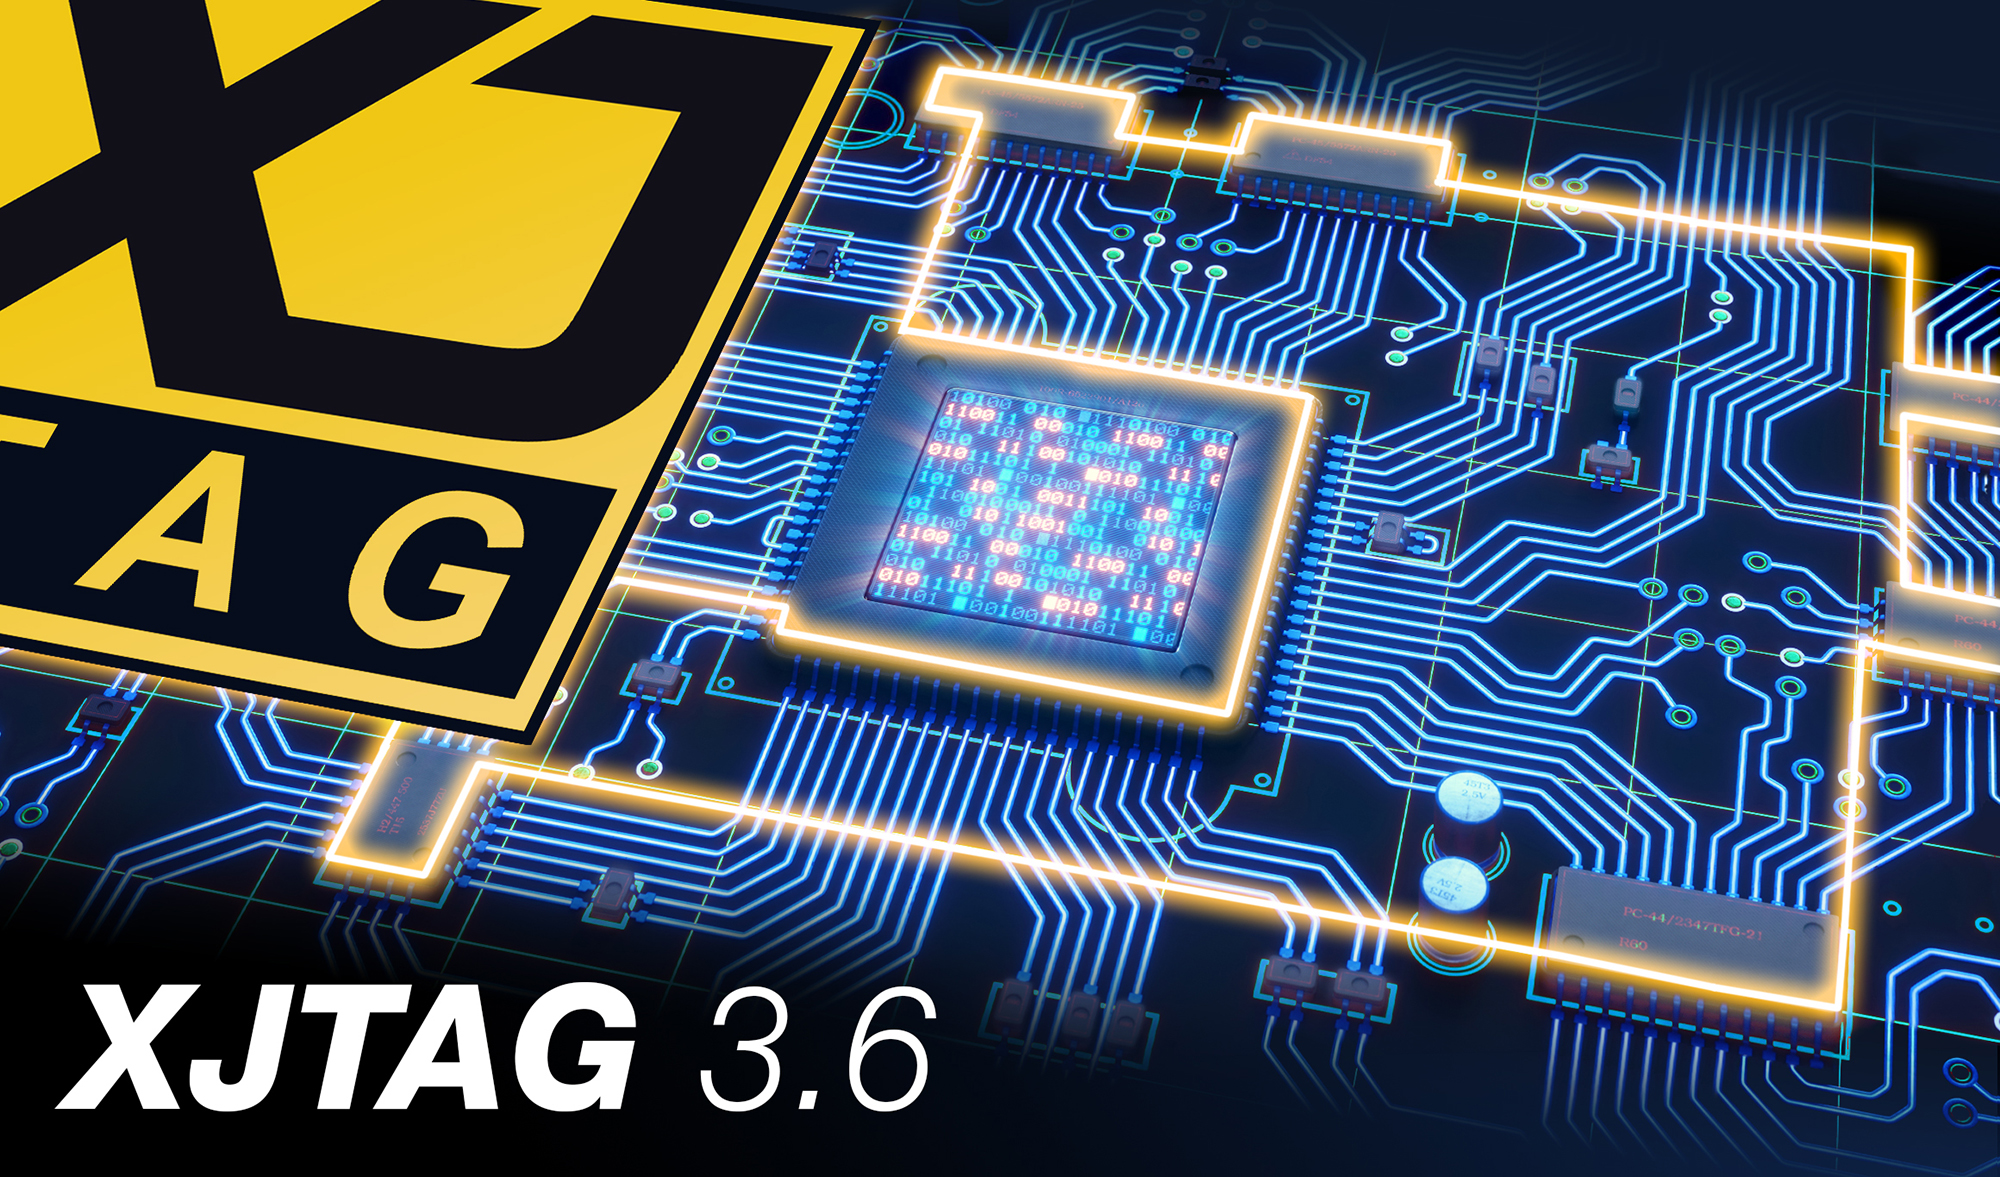 XJTAG Boundary Scan version 3.6